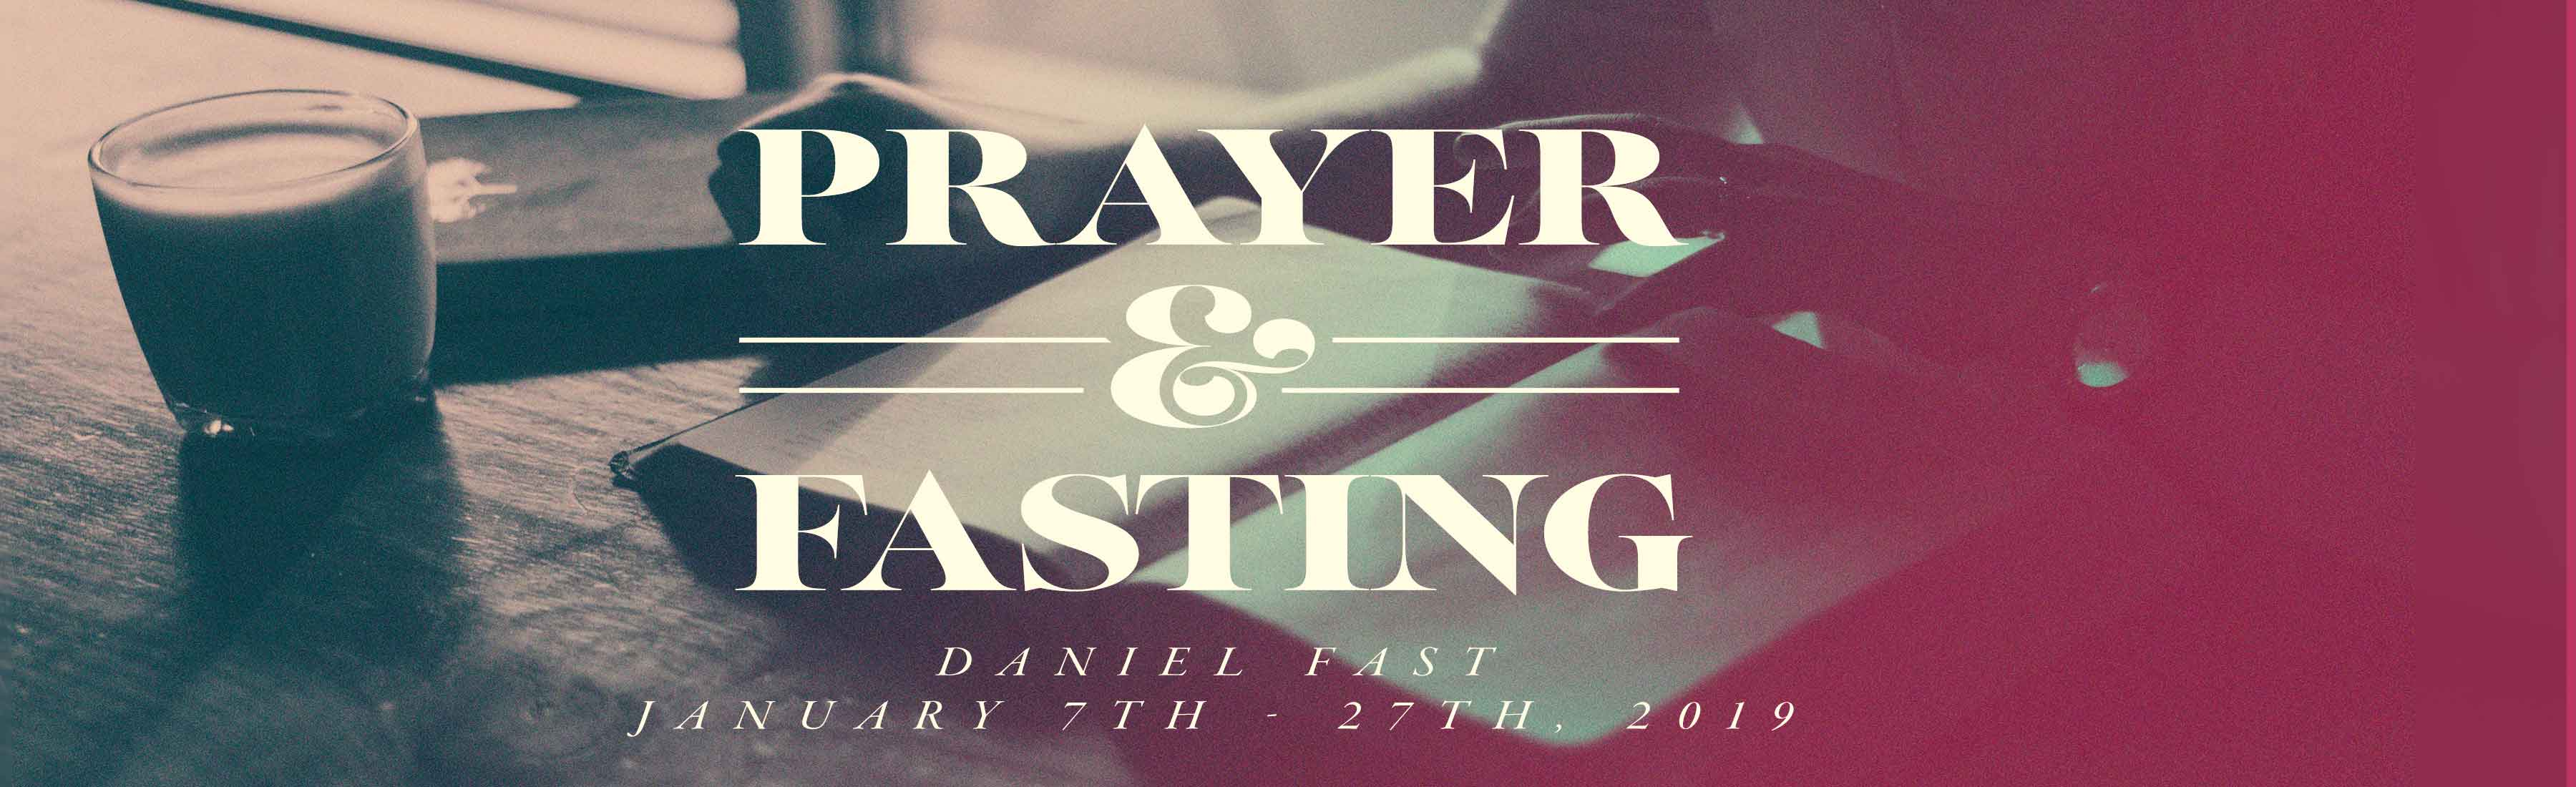 Prayer-And-Fasting-Slider-Low-Res